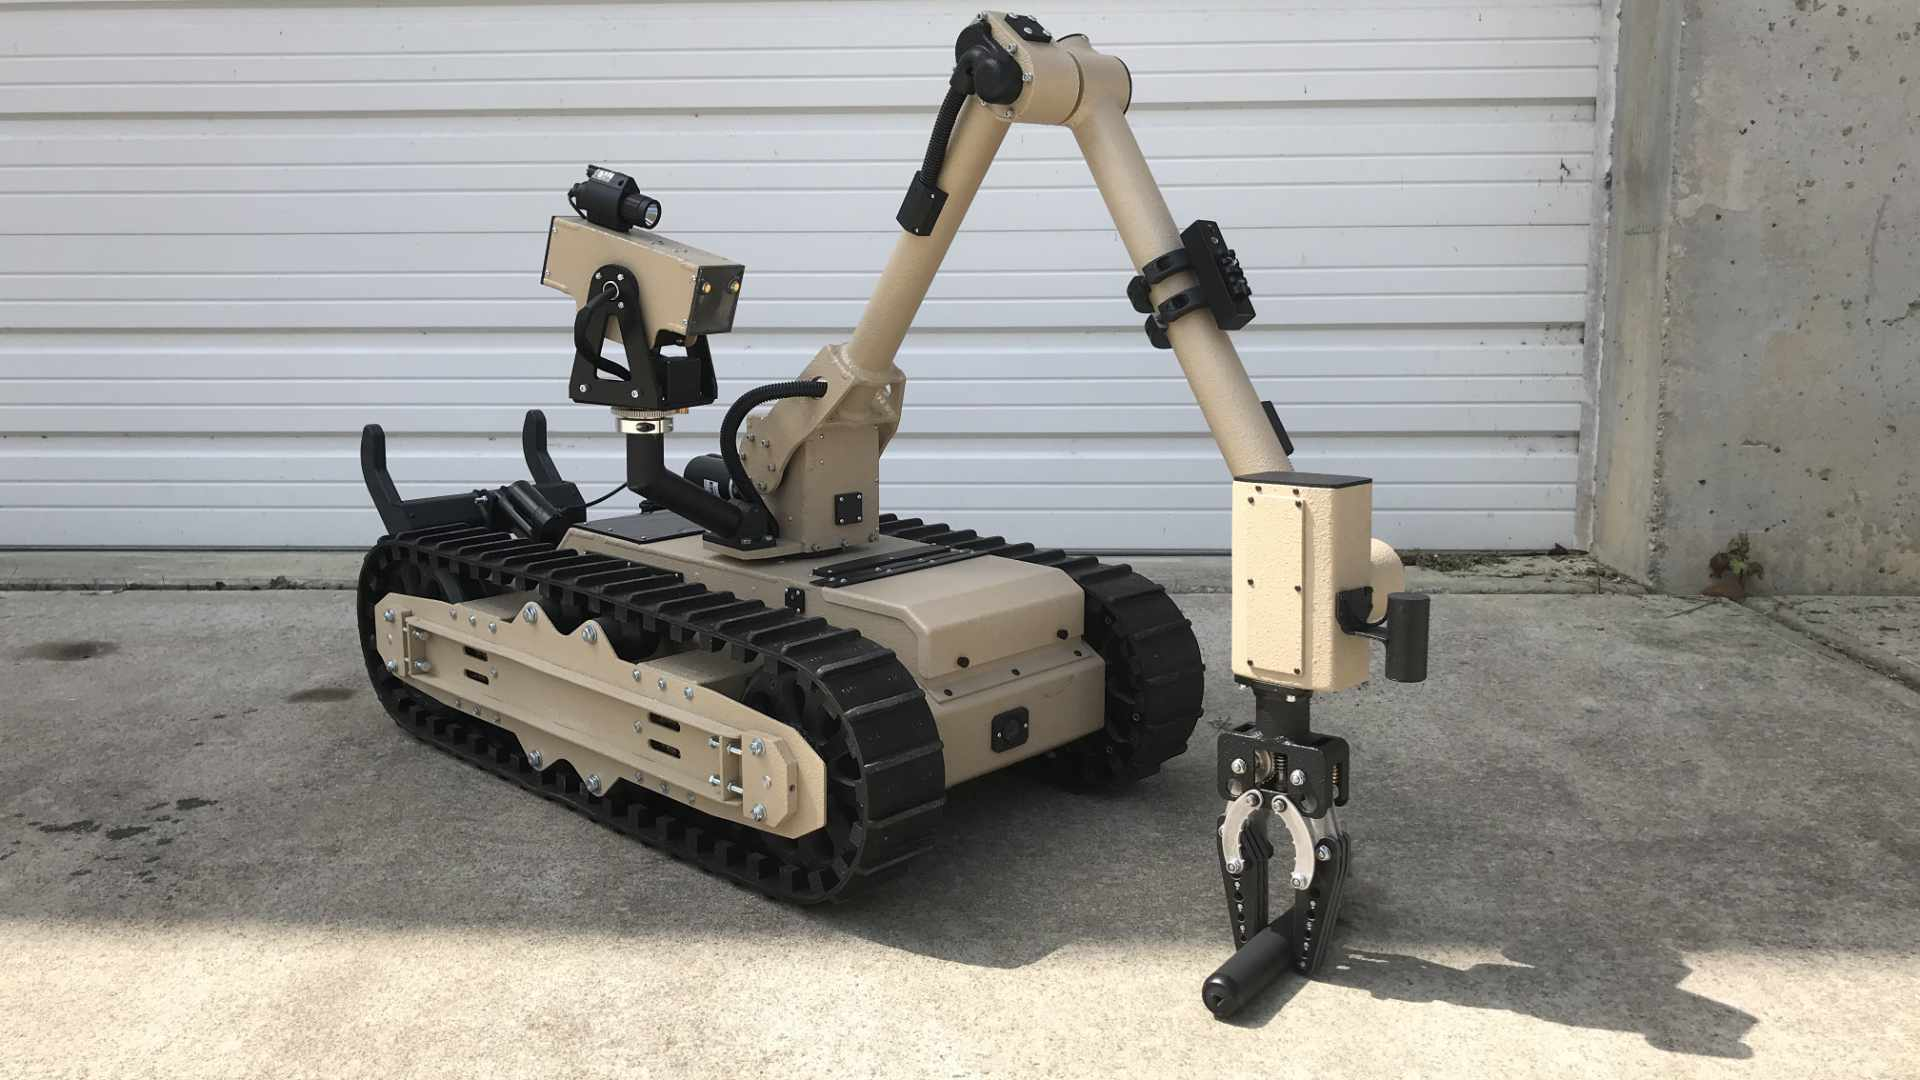 Mastiff Tactical Robot Manipulating Object